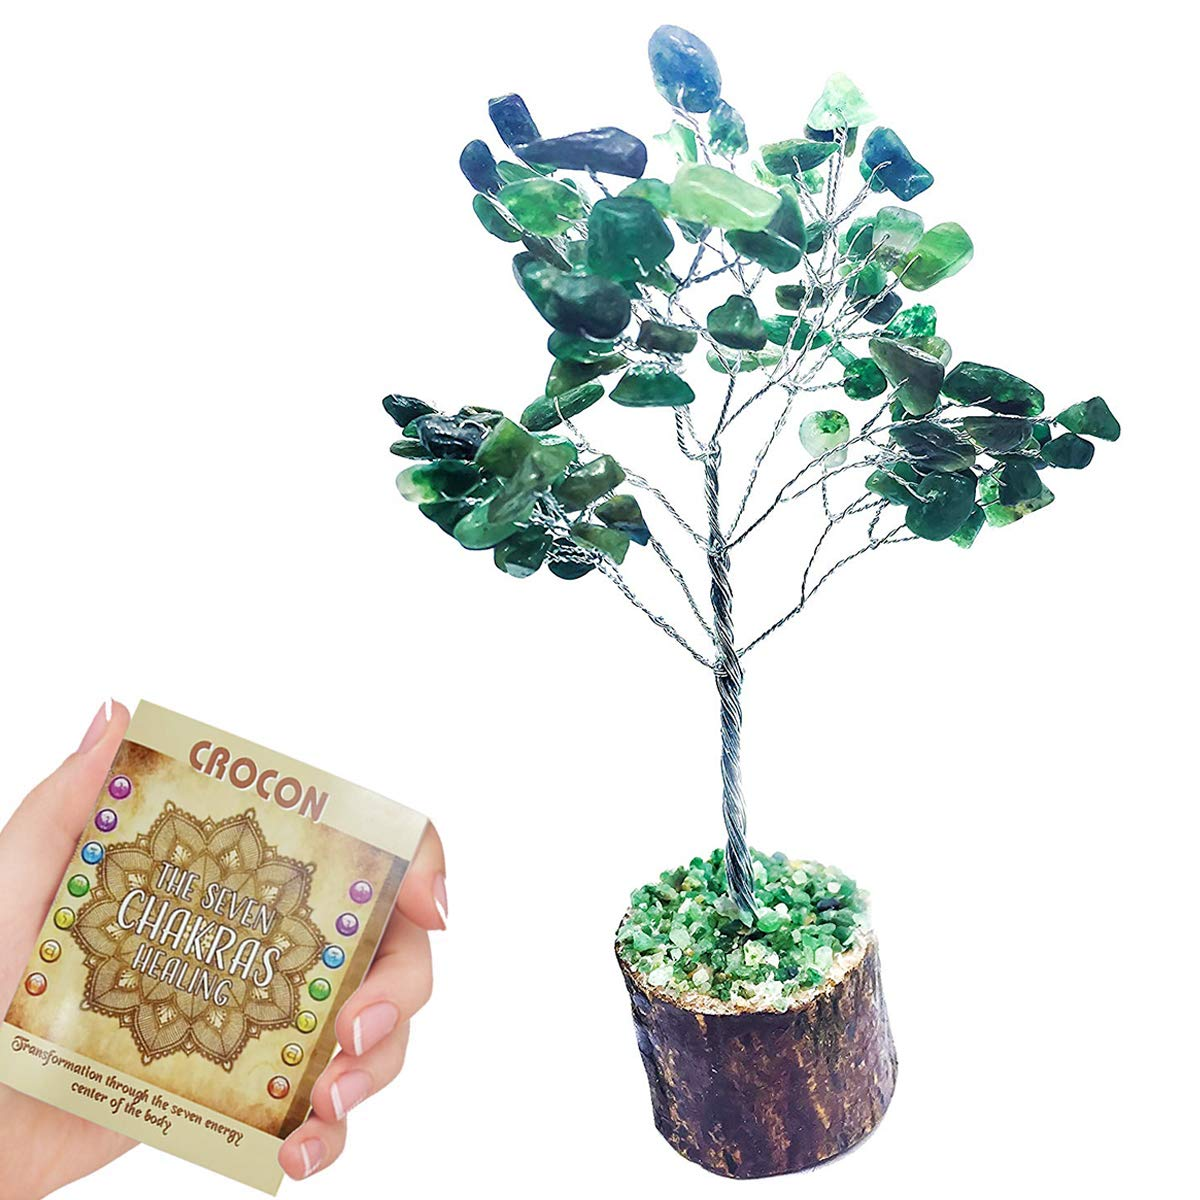 Crocon Natural Color Healing Gemstone Crystal Bonsai Fortune Money Tree for Good Luck Wealth /& Prosperity Spiritual Gift Size 7-8 inch Red Jasper Silver Wire